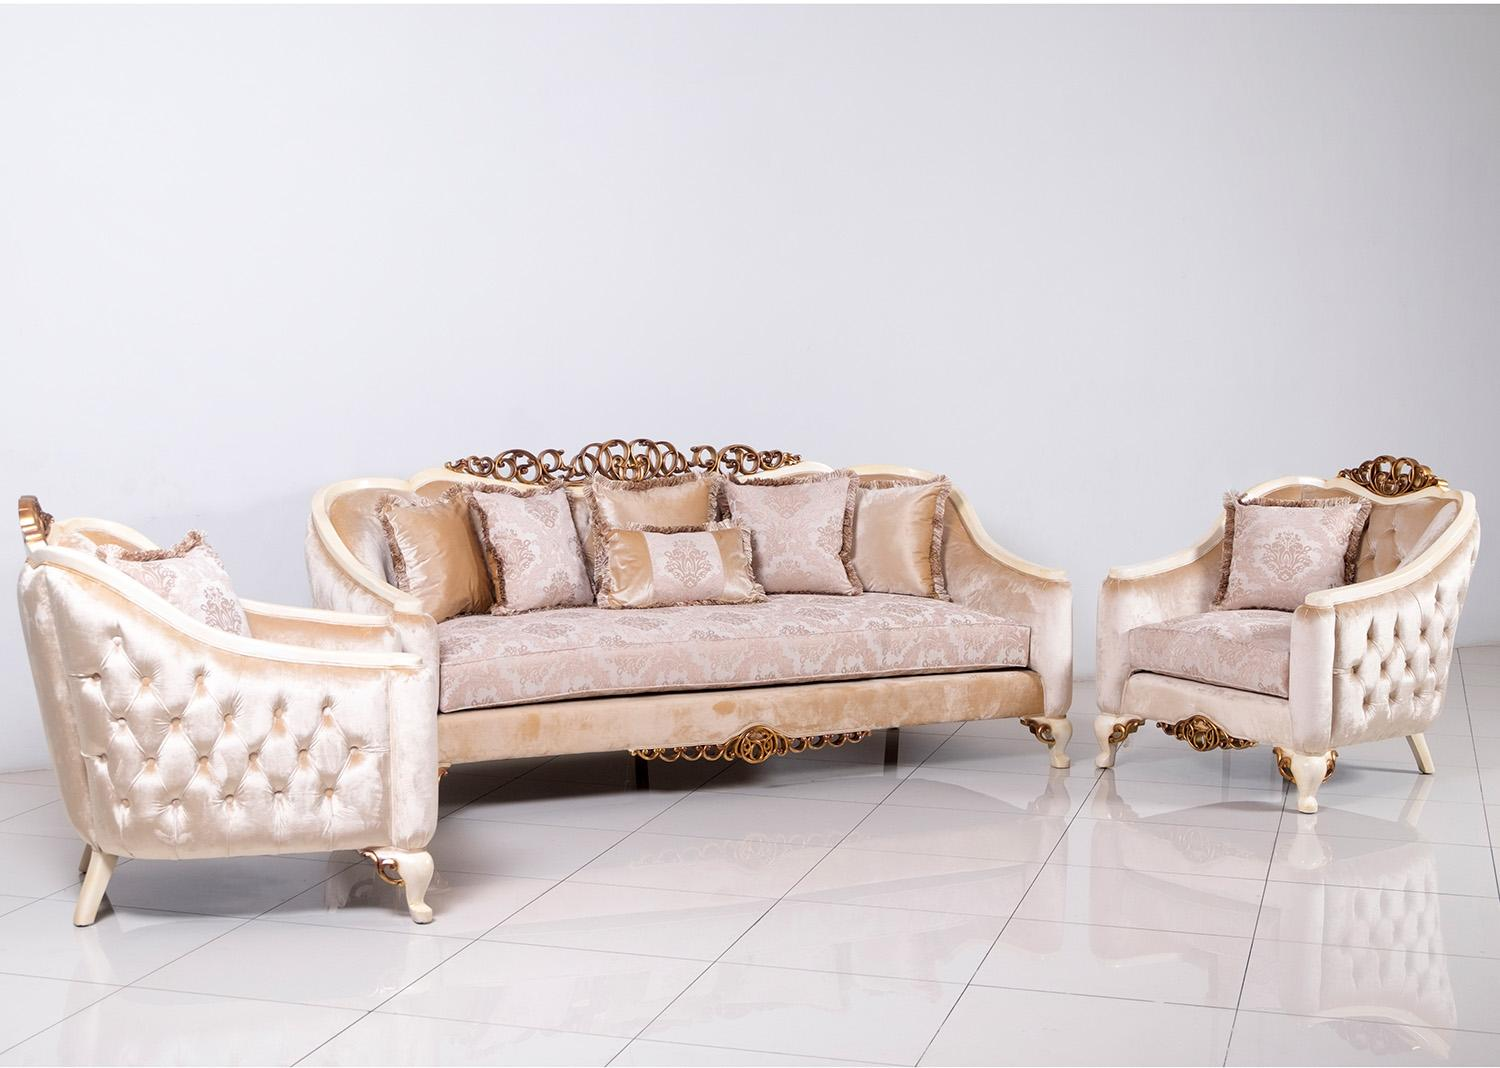 Classic  Traditional Beige  Gold  Antique  Pearl Wood  Solid Hardwood and Fabric Sofa Set EUROPEAN FURNITURE 45350-S-Set-3